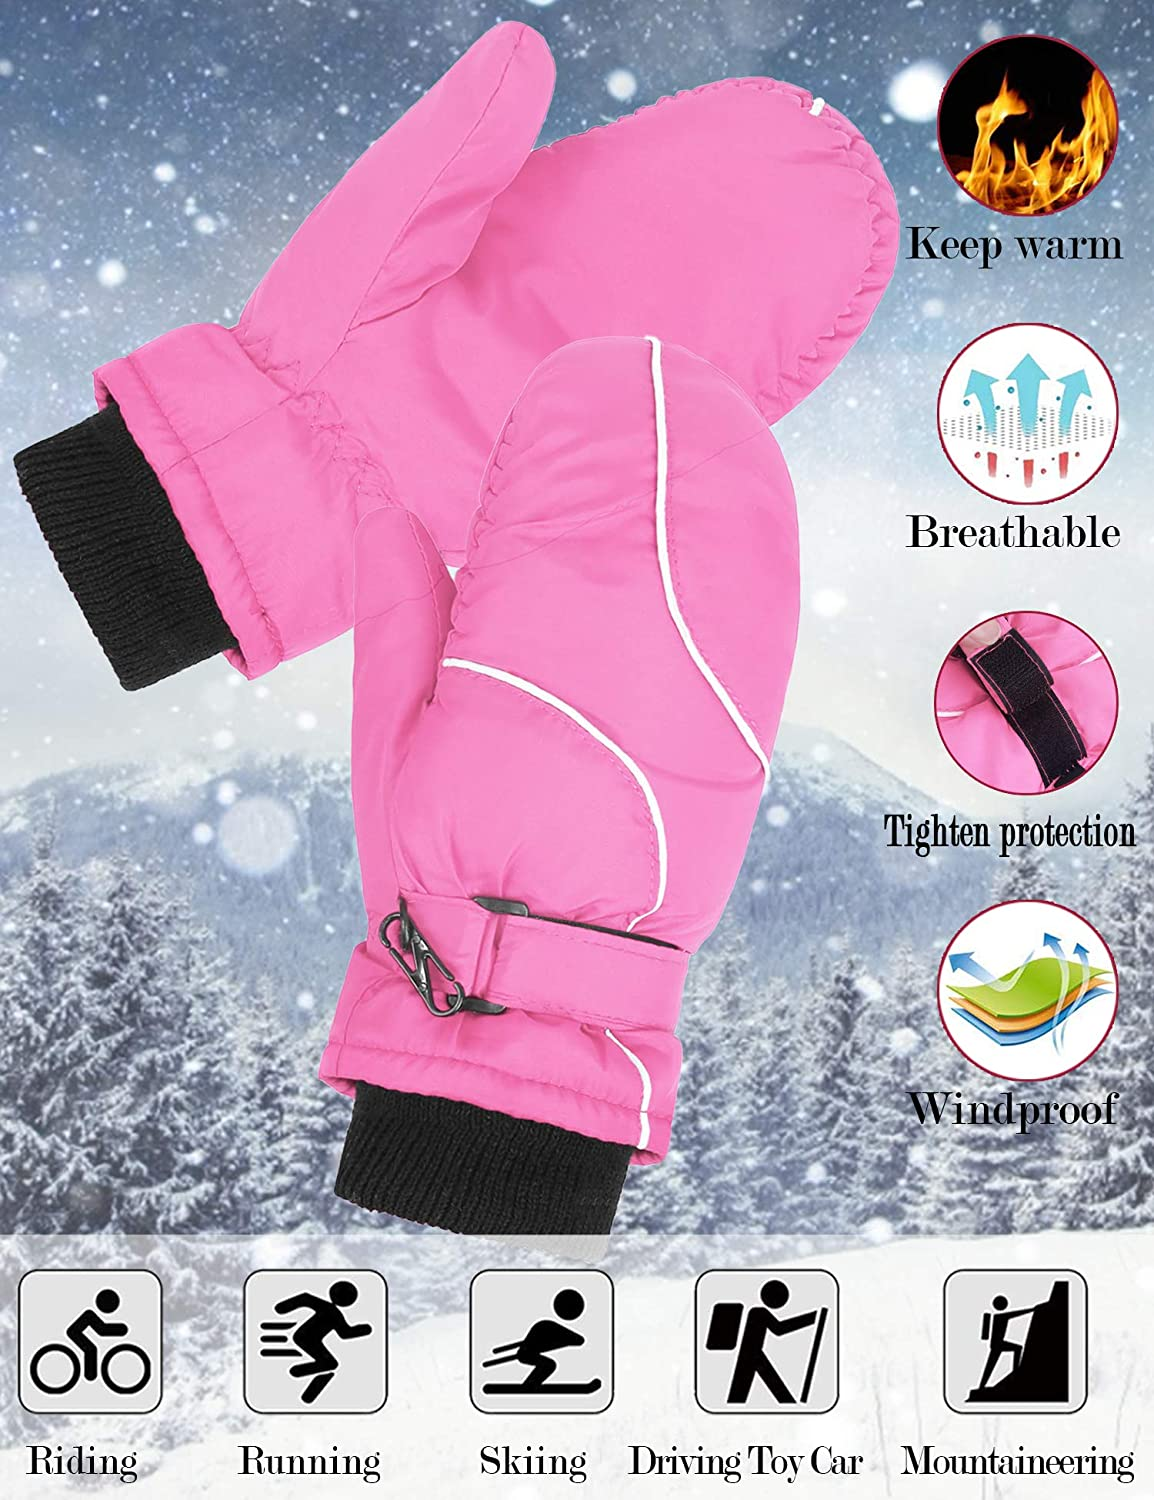 Hawiton Kids Winter Windproof Ski Mittens Snow Gloves for Boys Girls Cycling Biking Hiking Skiing Motorcycle Outdoor Sports